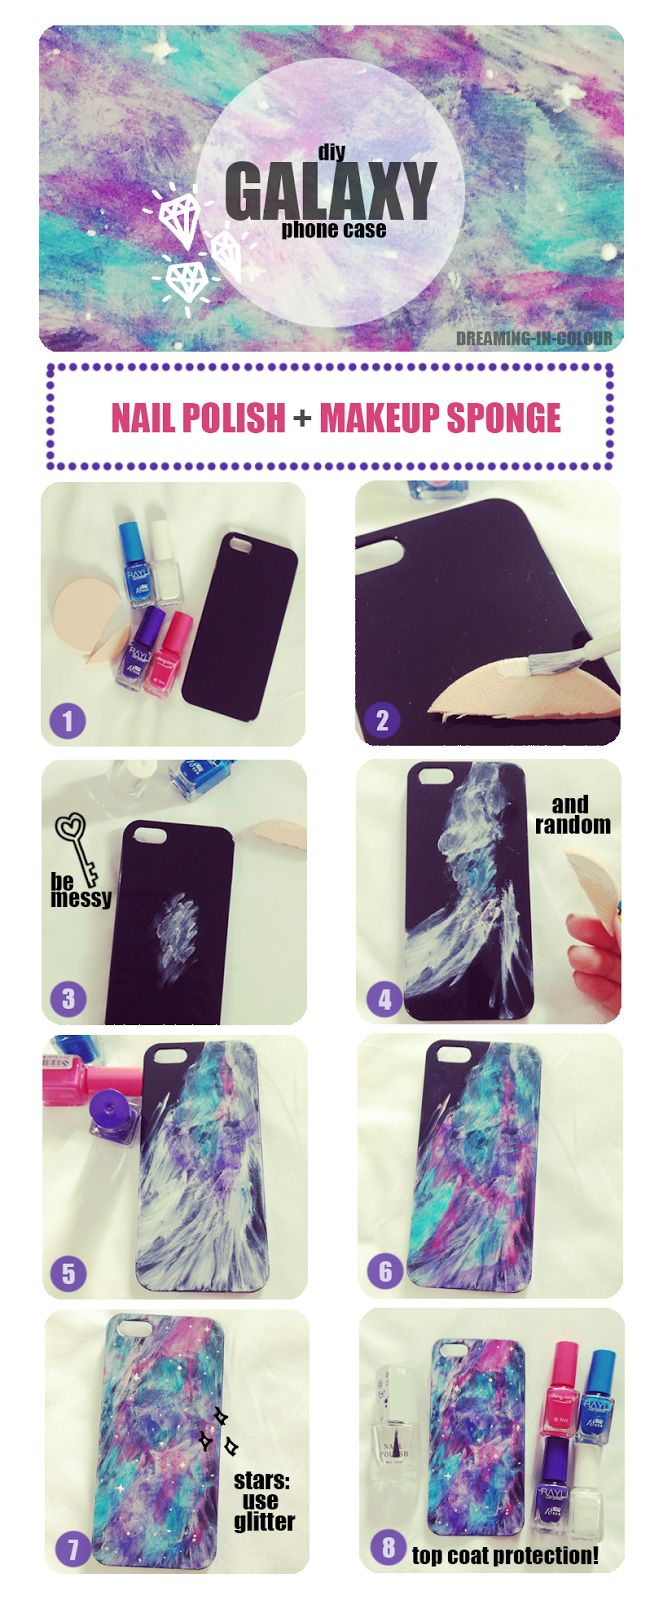 DIY Galaxy Iphone Case Pictures, Photos, and Images for Facebook, Tumblr, Pinterest, and Twitter